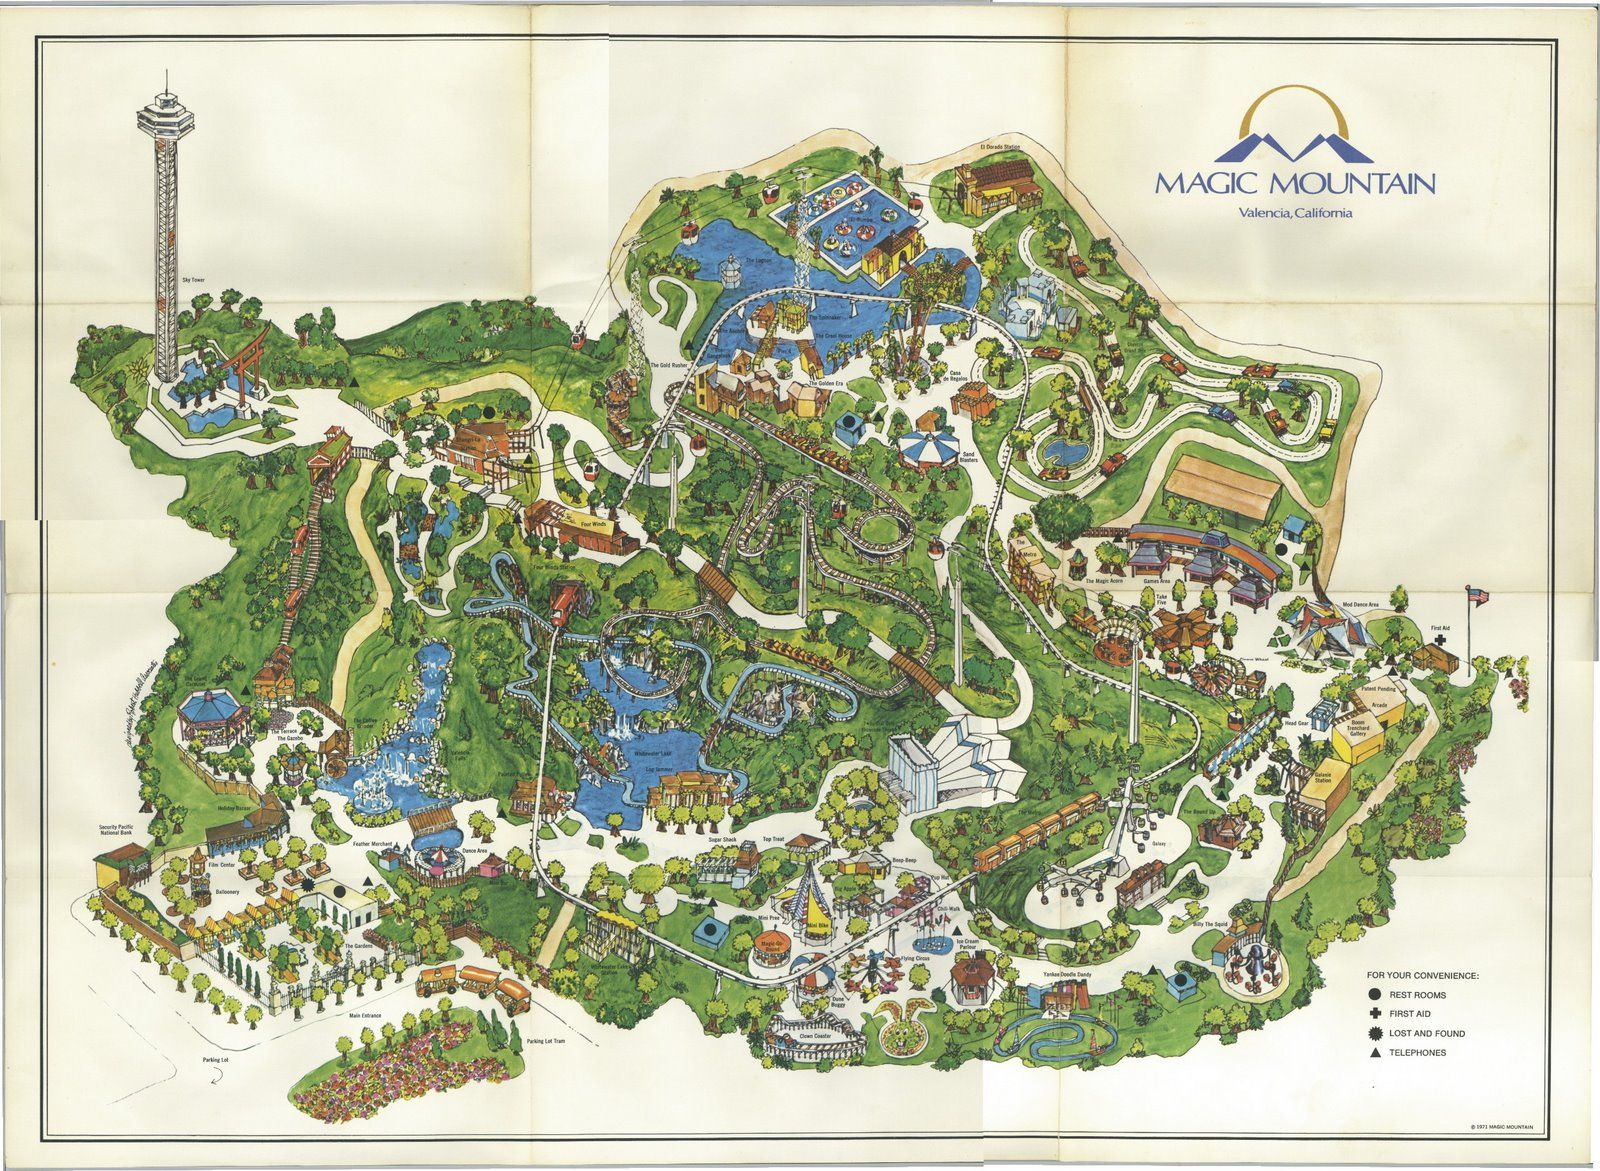 Pin By Jesse Bartyn On Amusement Parks Theme Park Map Amusement Park Santa Clarita Valley